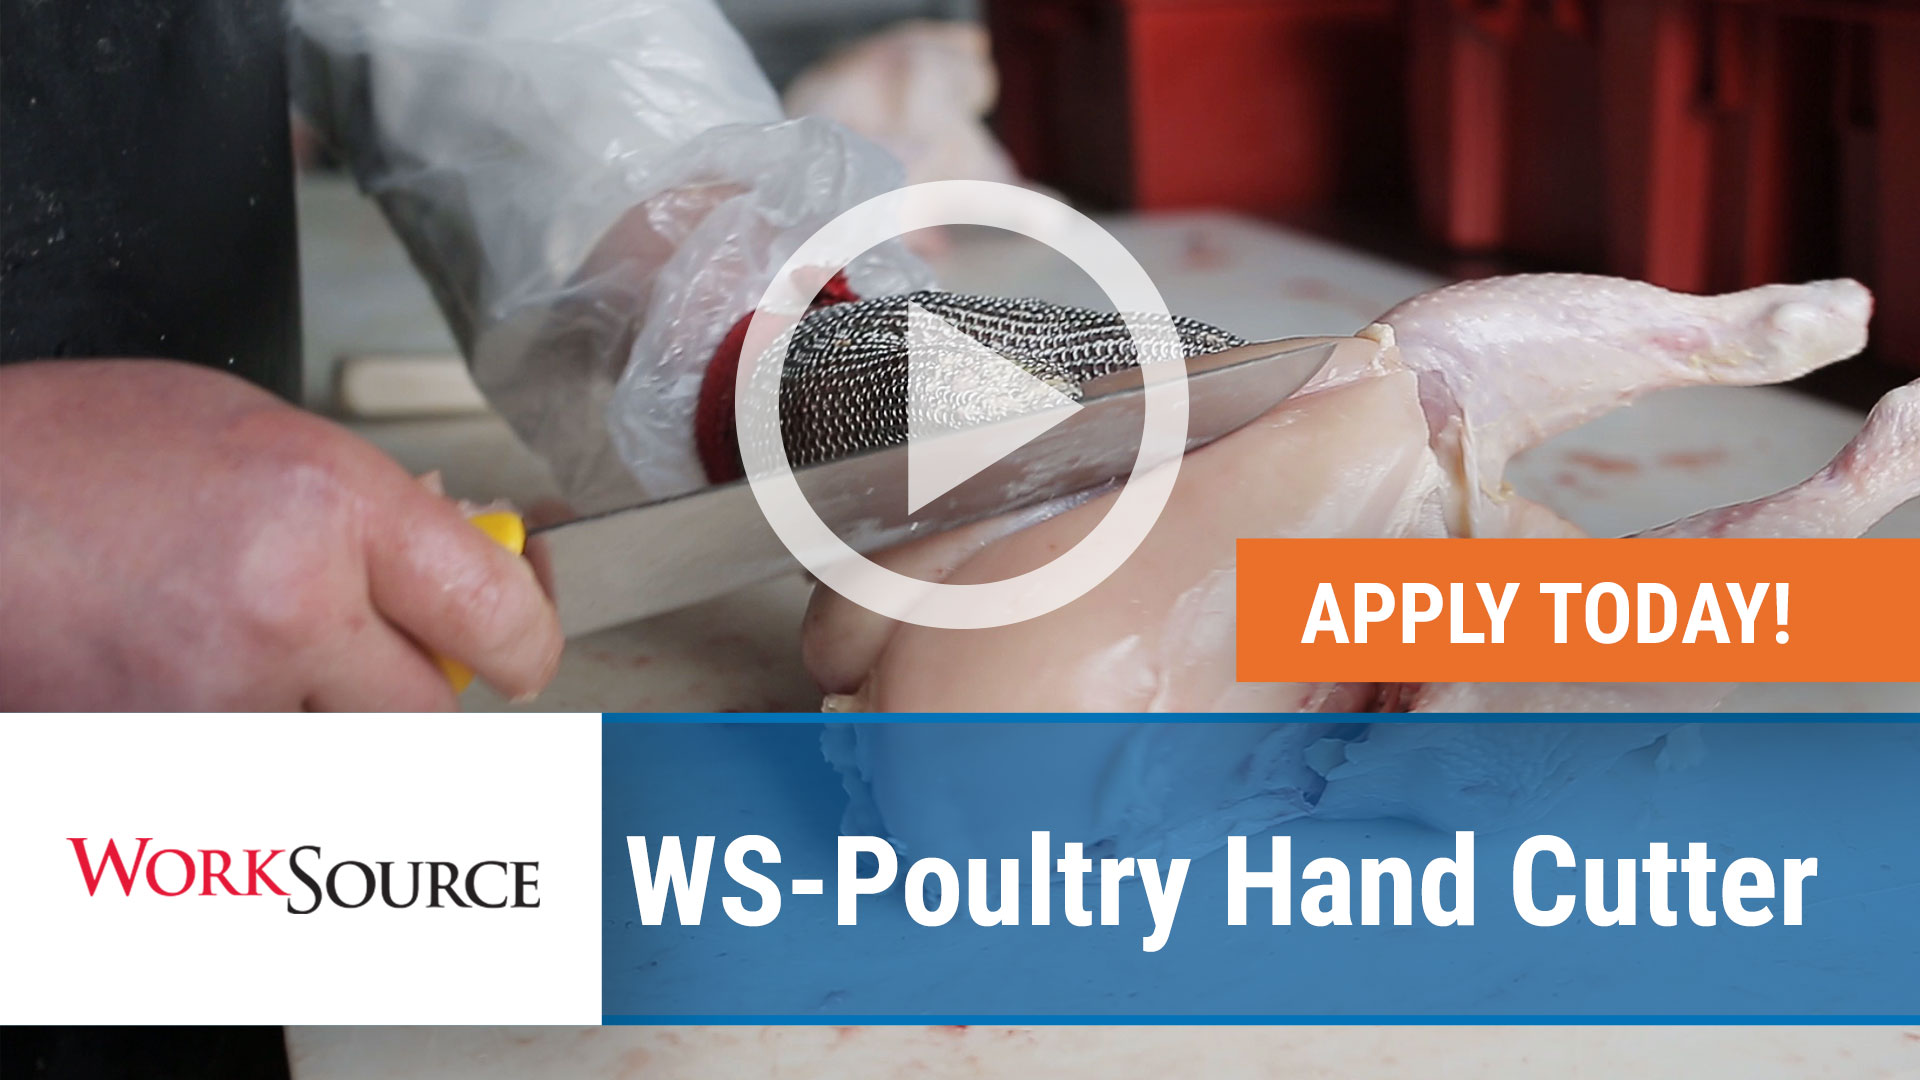 Watch our careers video for available job opening WS Poultry Hand Cutter in Huntsville,Arkansas. USA